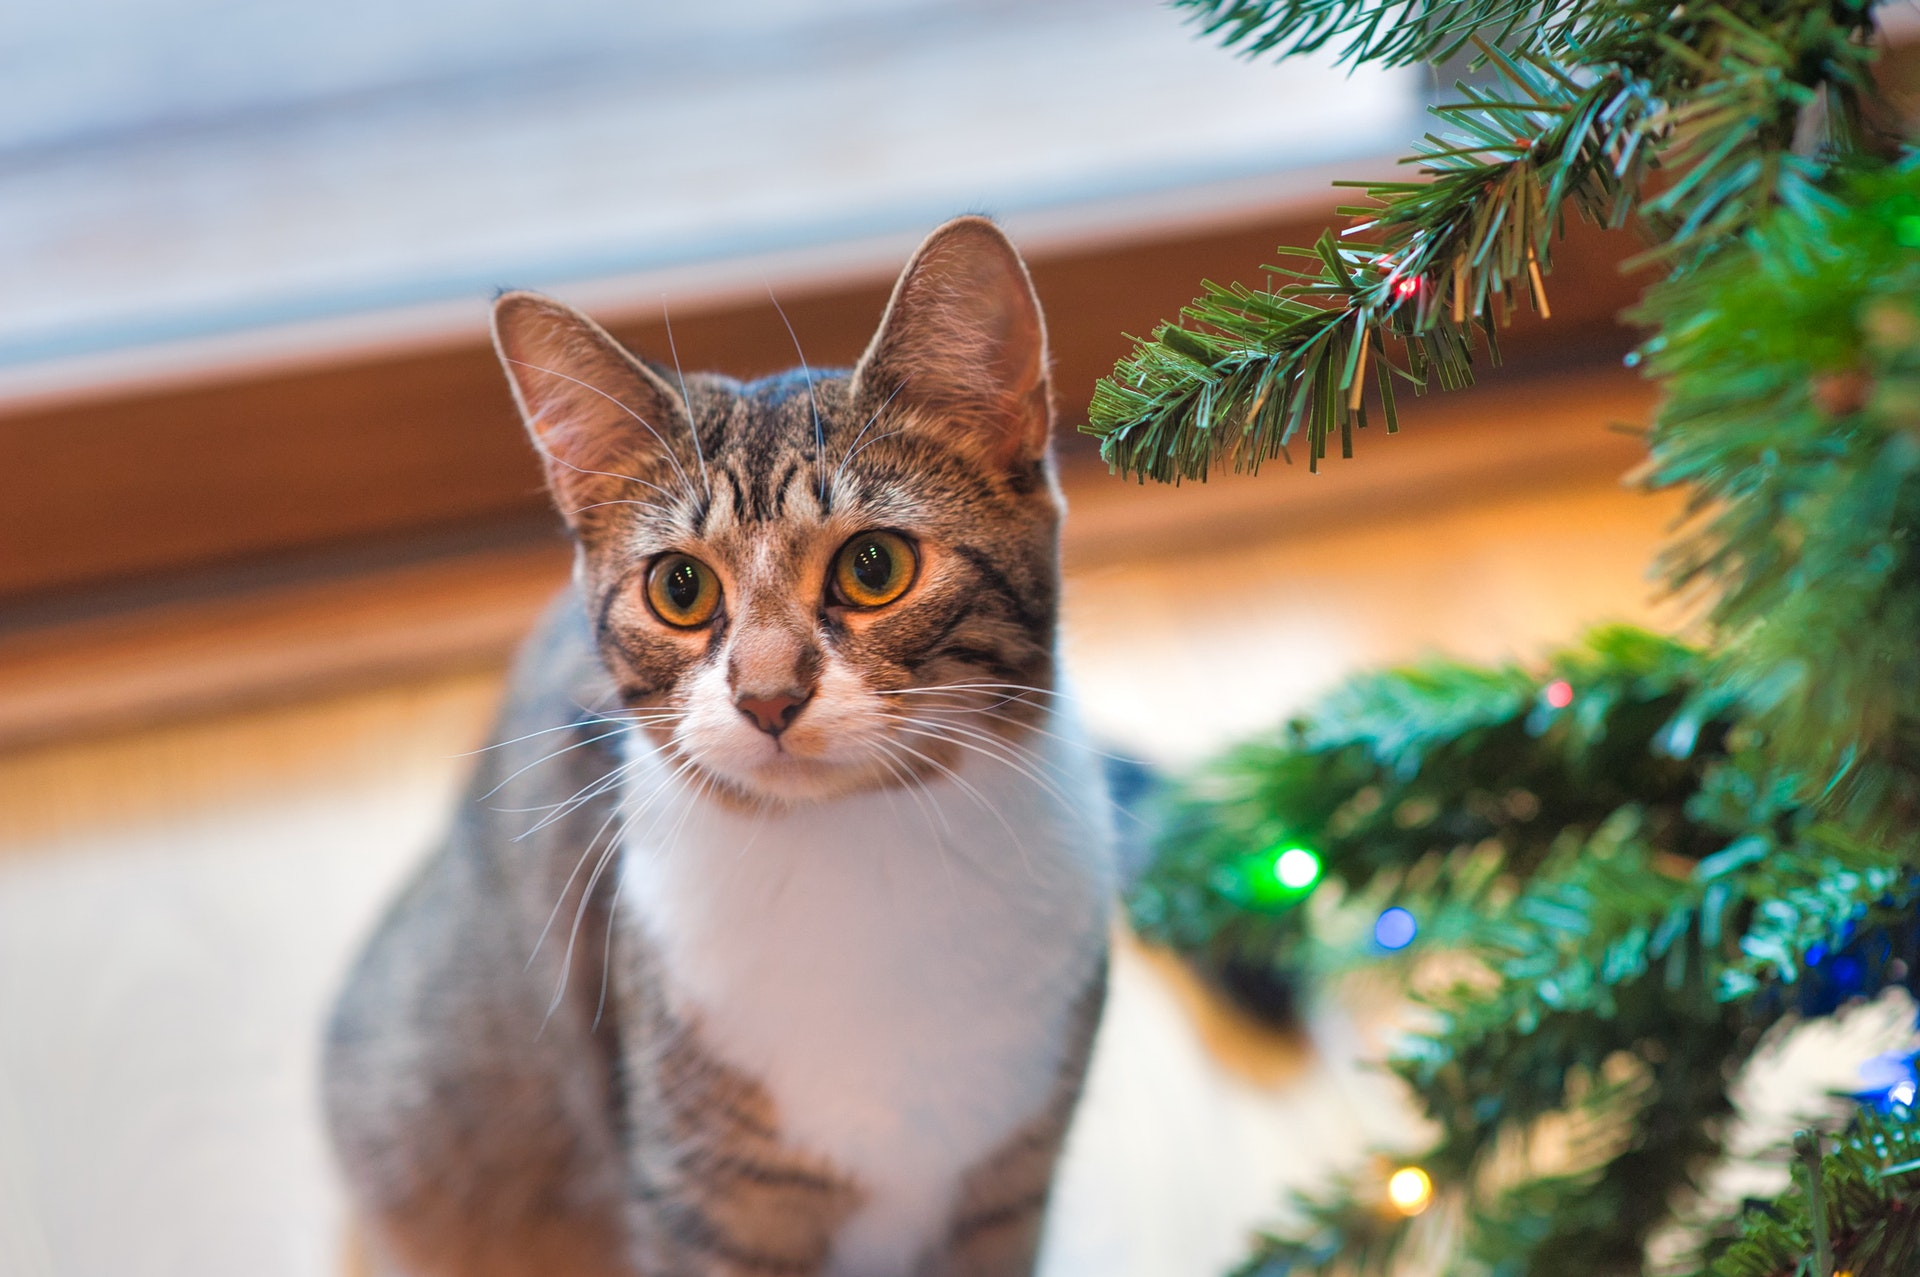 The holidays can be a stressful time for everyone, especially for conscientious shoppers. We've compiled a list of eco-friendly cat products that are sure to wow this holiday season.